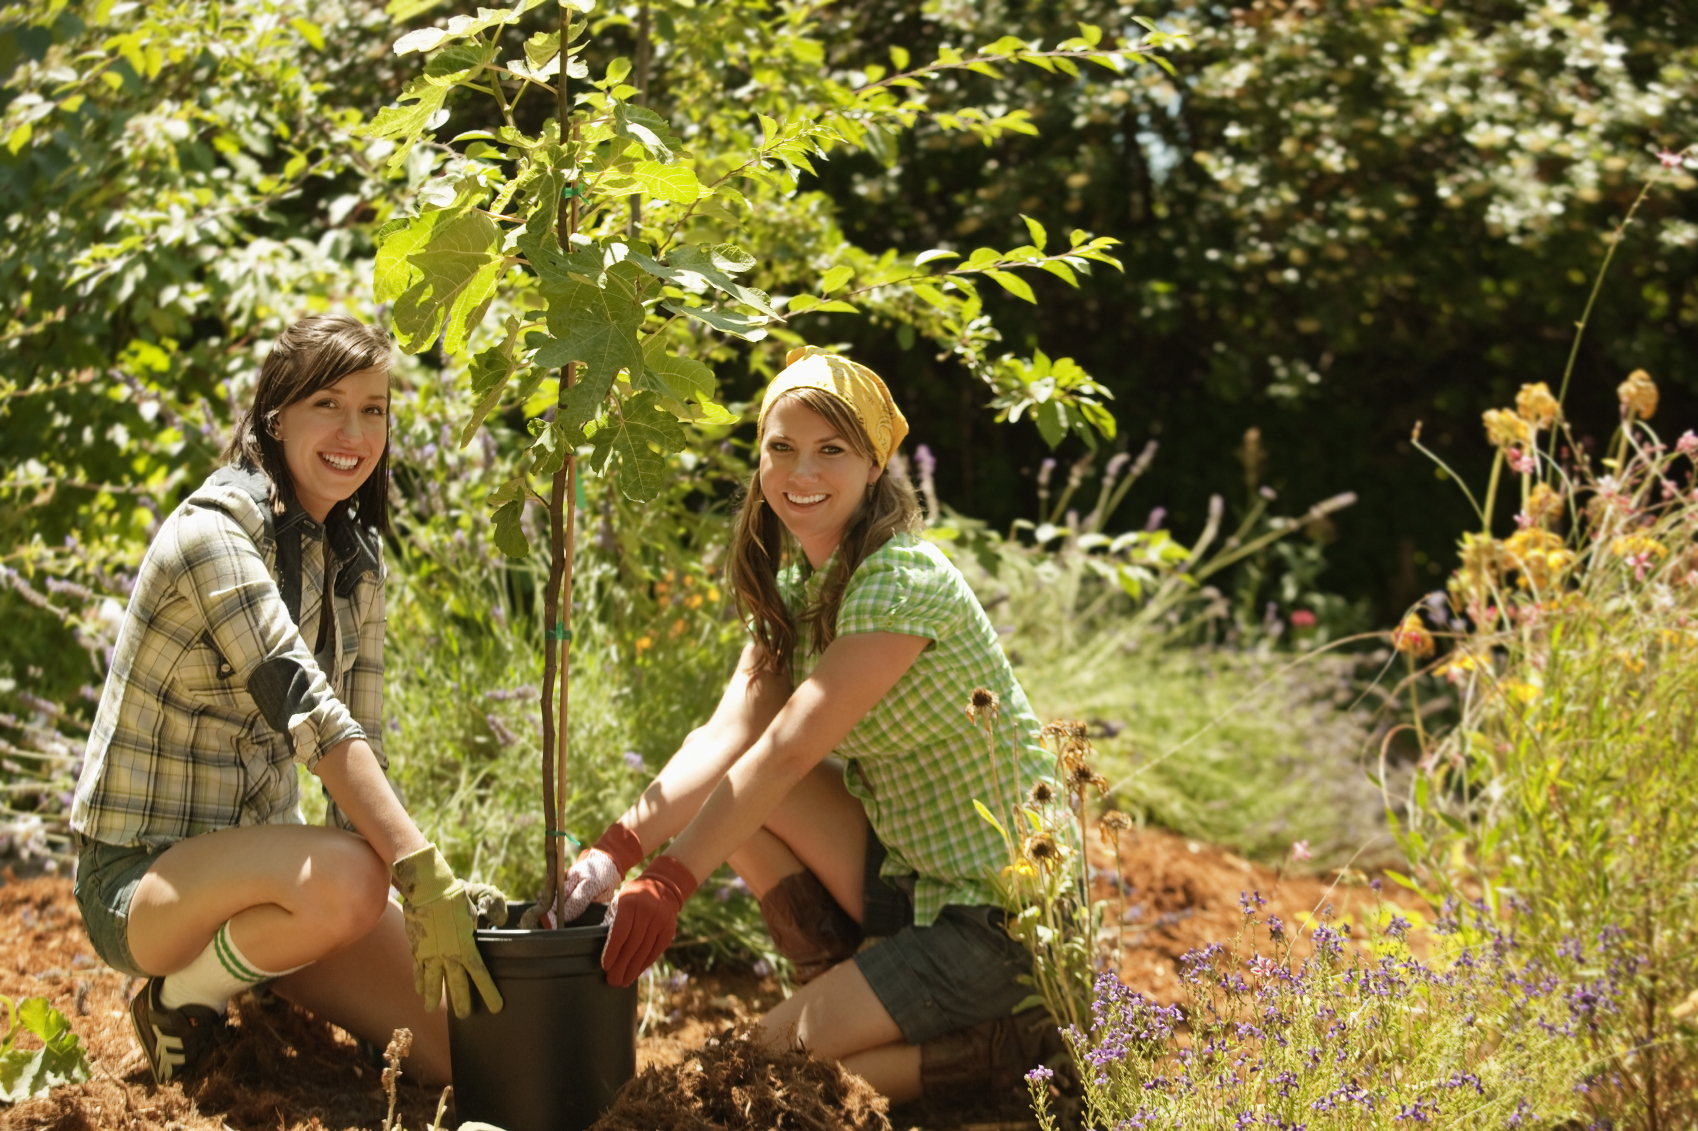 Two young girls planting a tree together